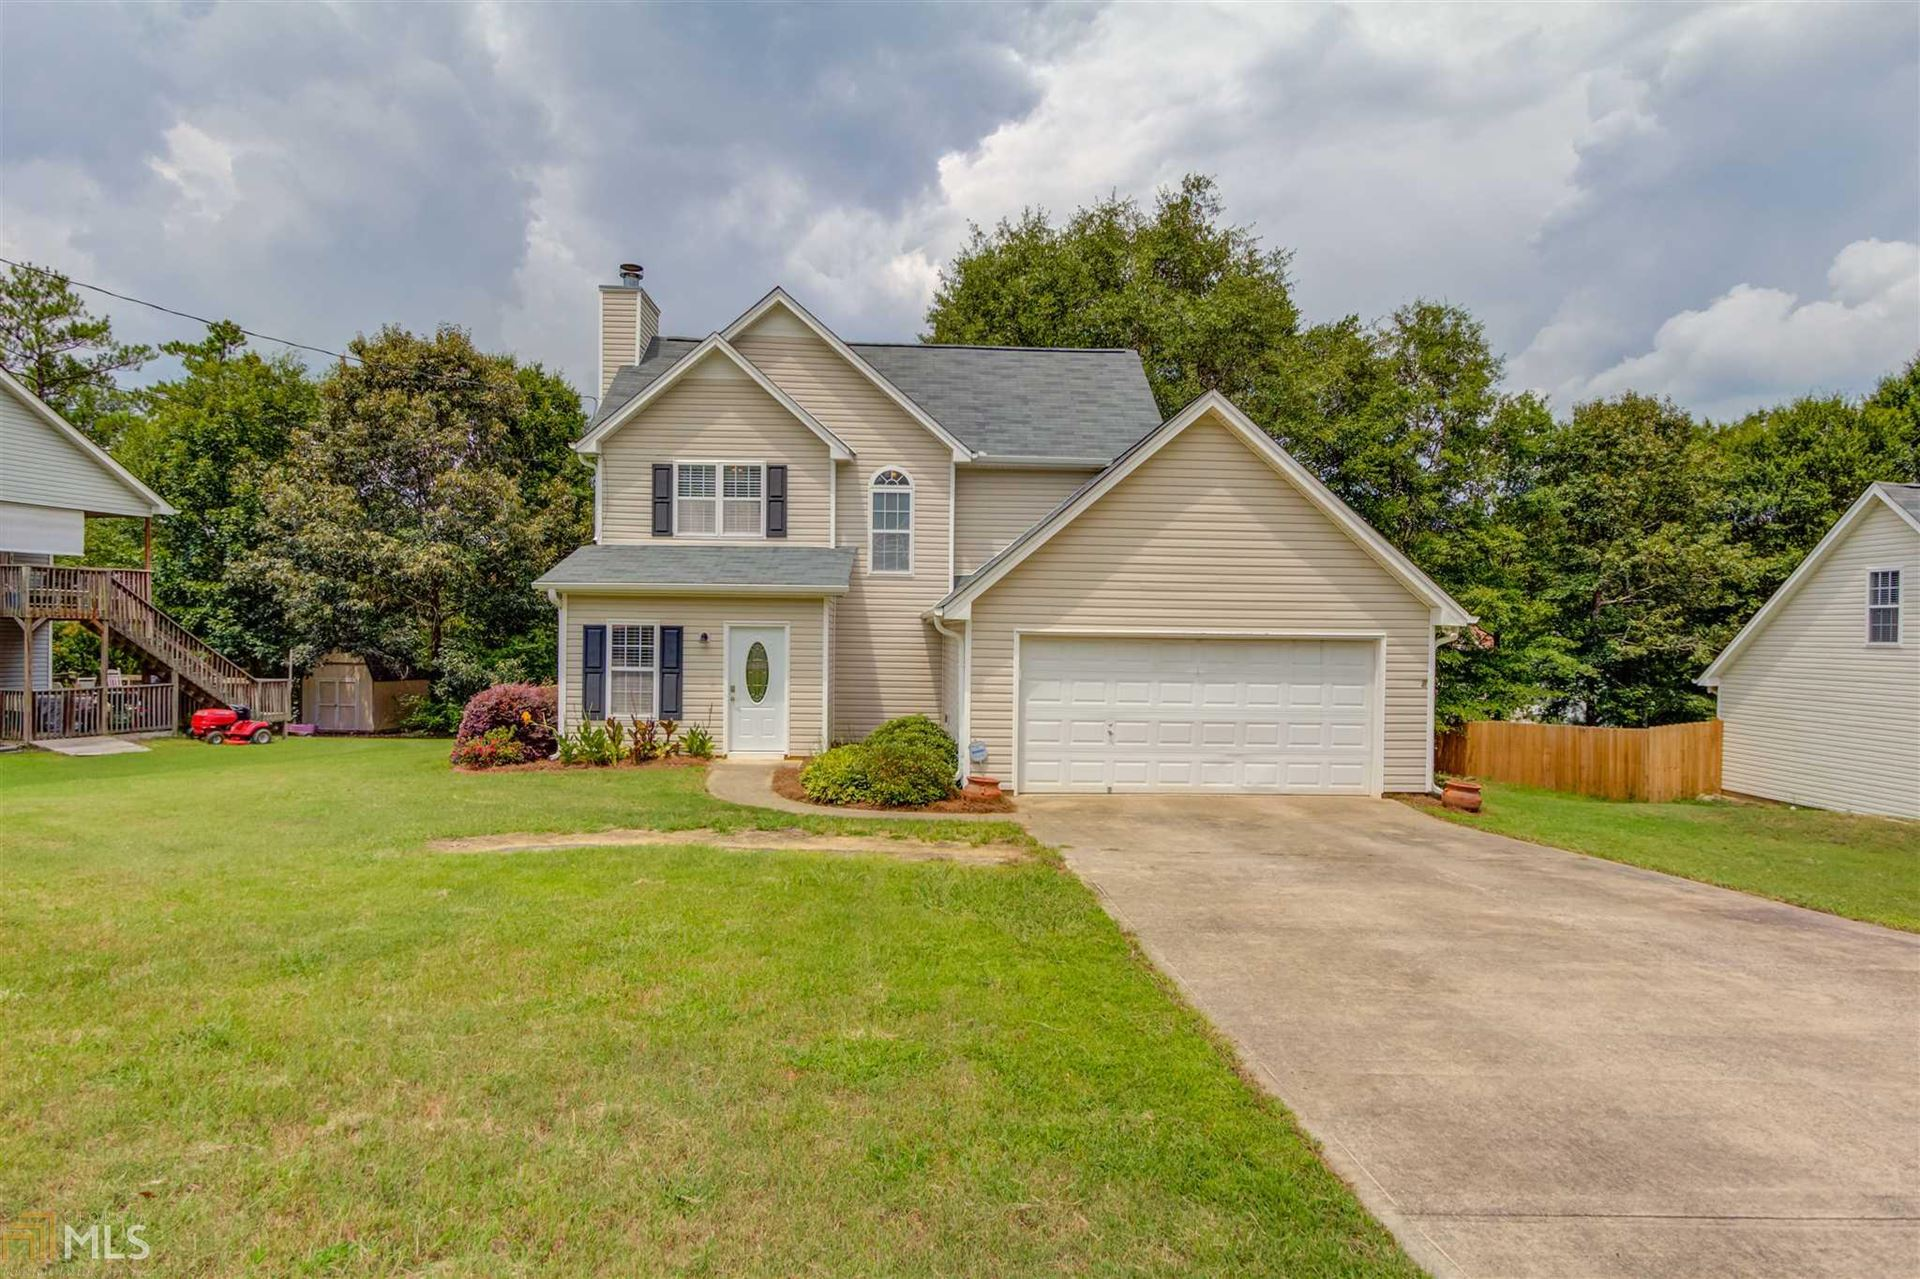 303 Rocky Point Ct, Winder, GA 30680 - #: 8838875